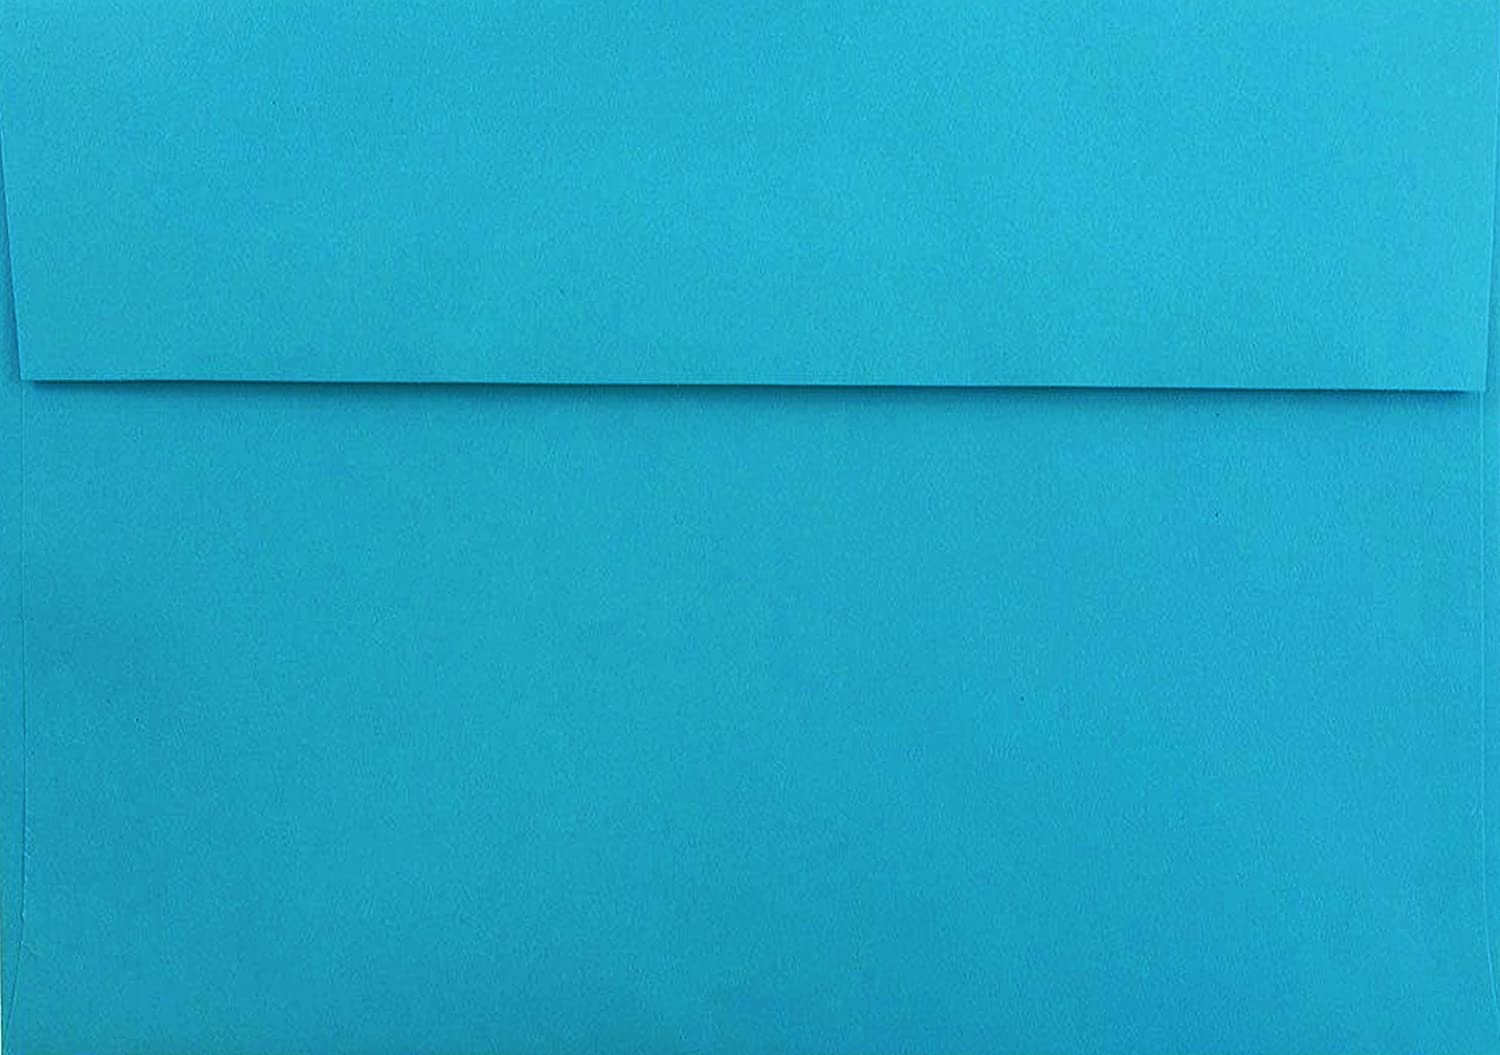 Bright Blue 100 Boxed A2 (4-3/8 x 5-3/4) Envelopes for 4 1/8 x 5 1/2 Cards, Invitations, Announcements from The Envelope Gallery Astrobrights Celestial Blue